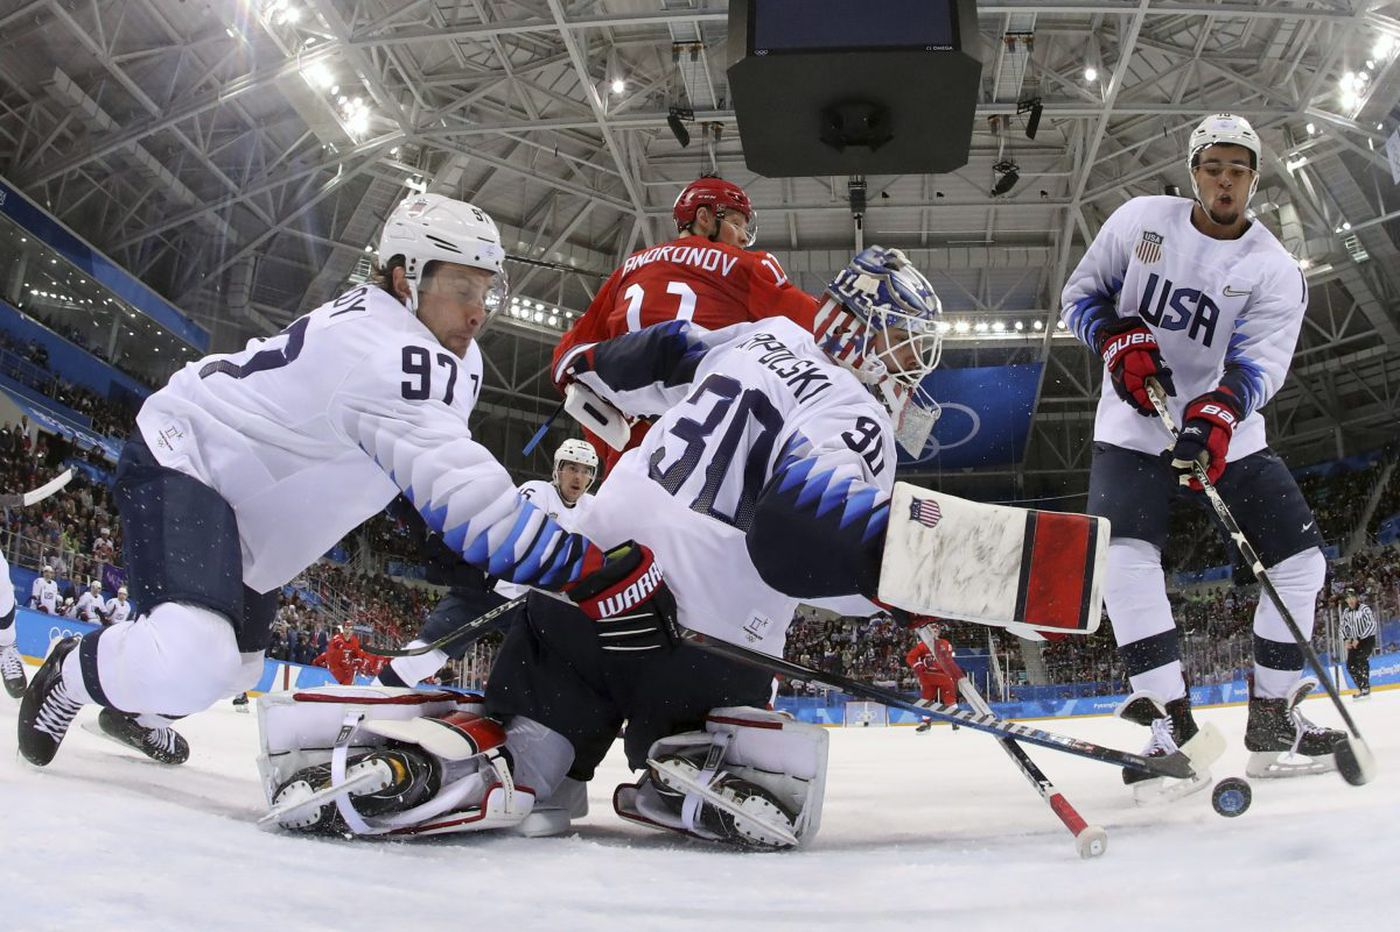 Americans fall to Russian squad in final men's hockey preliminary-round game